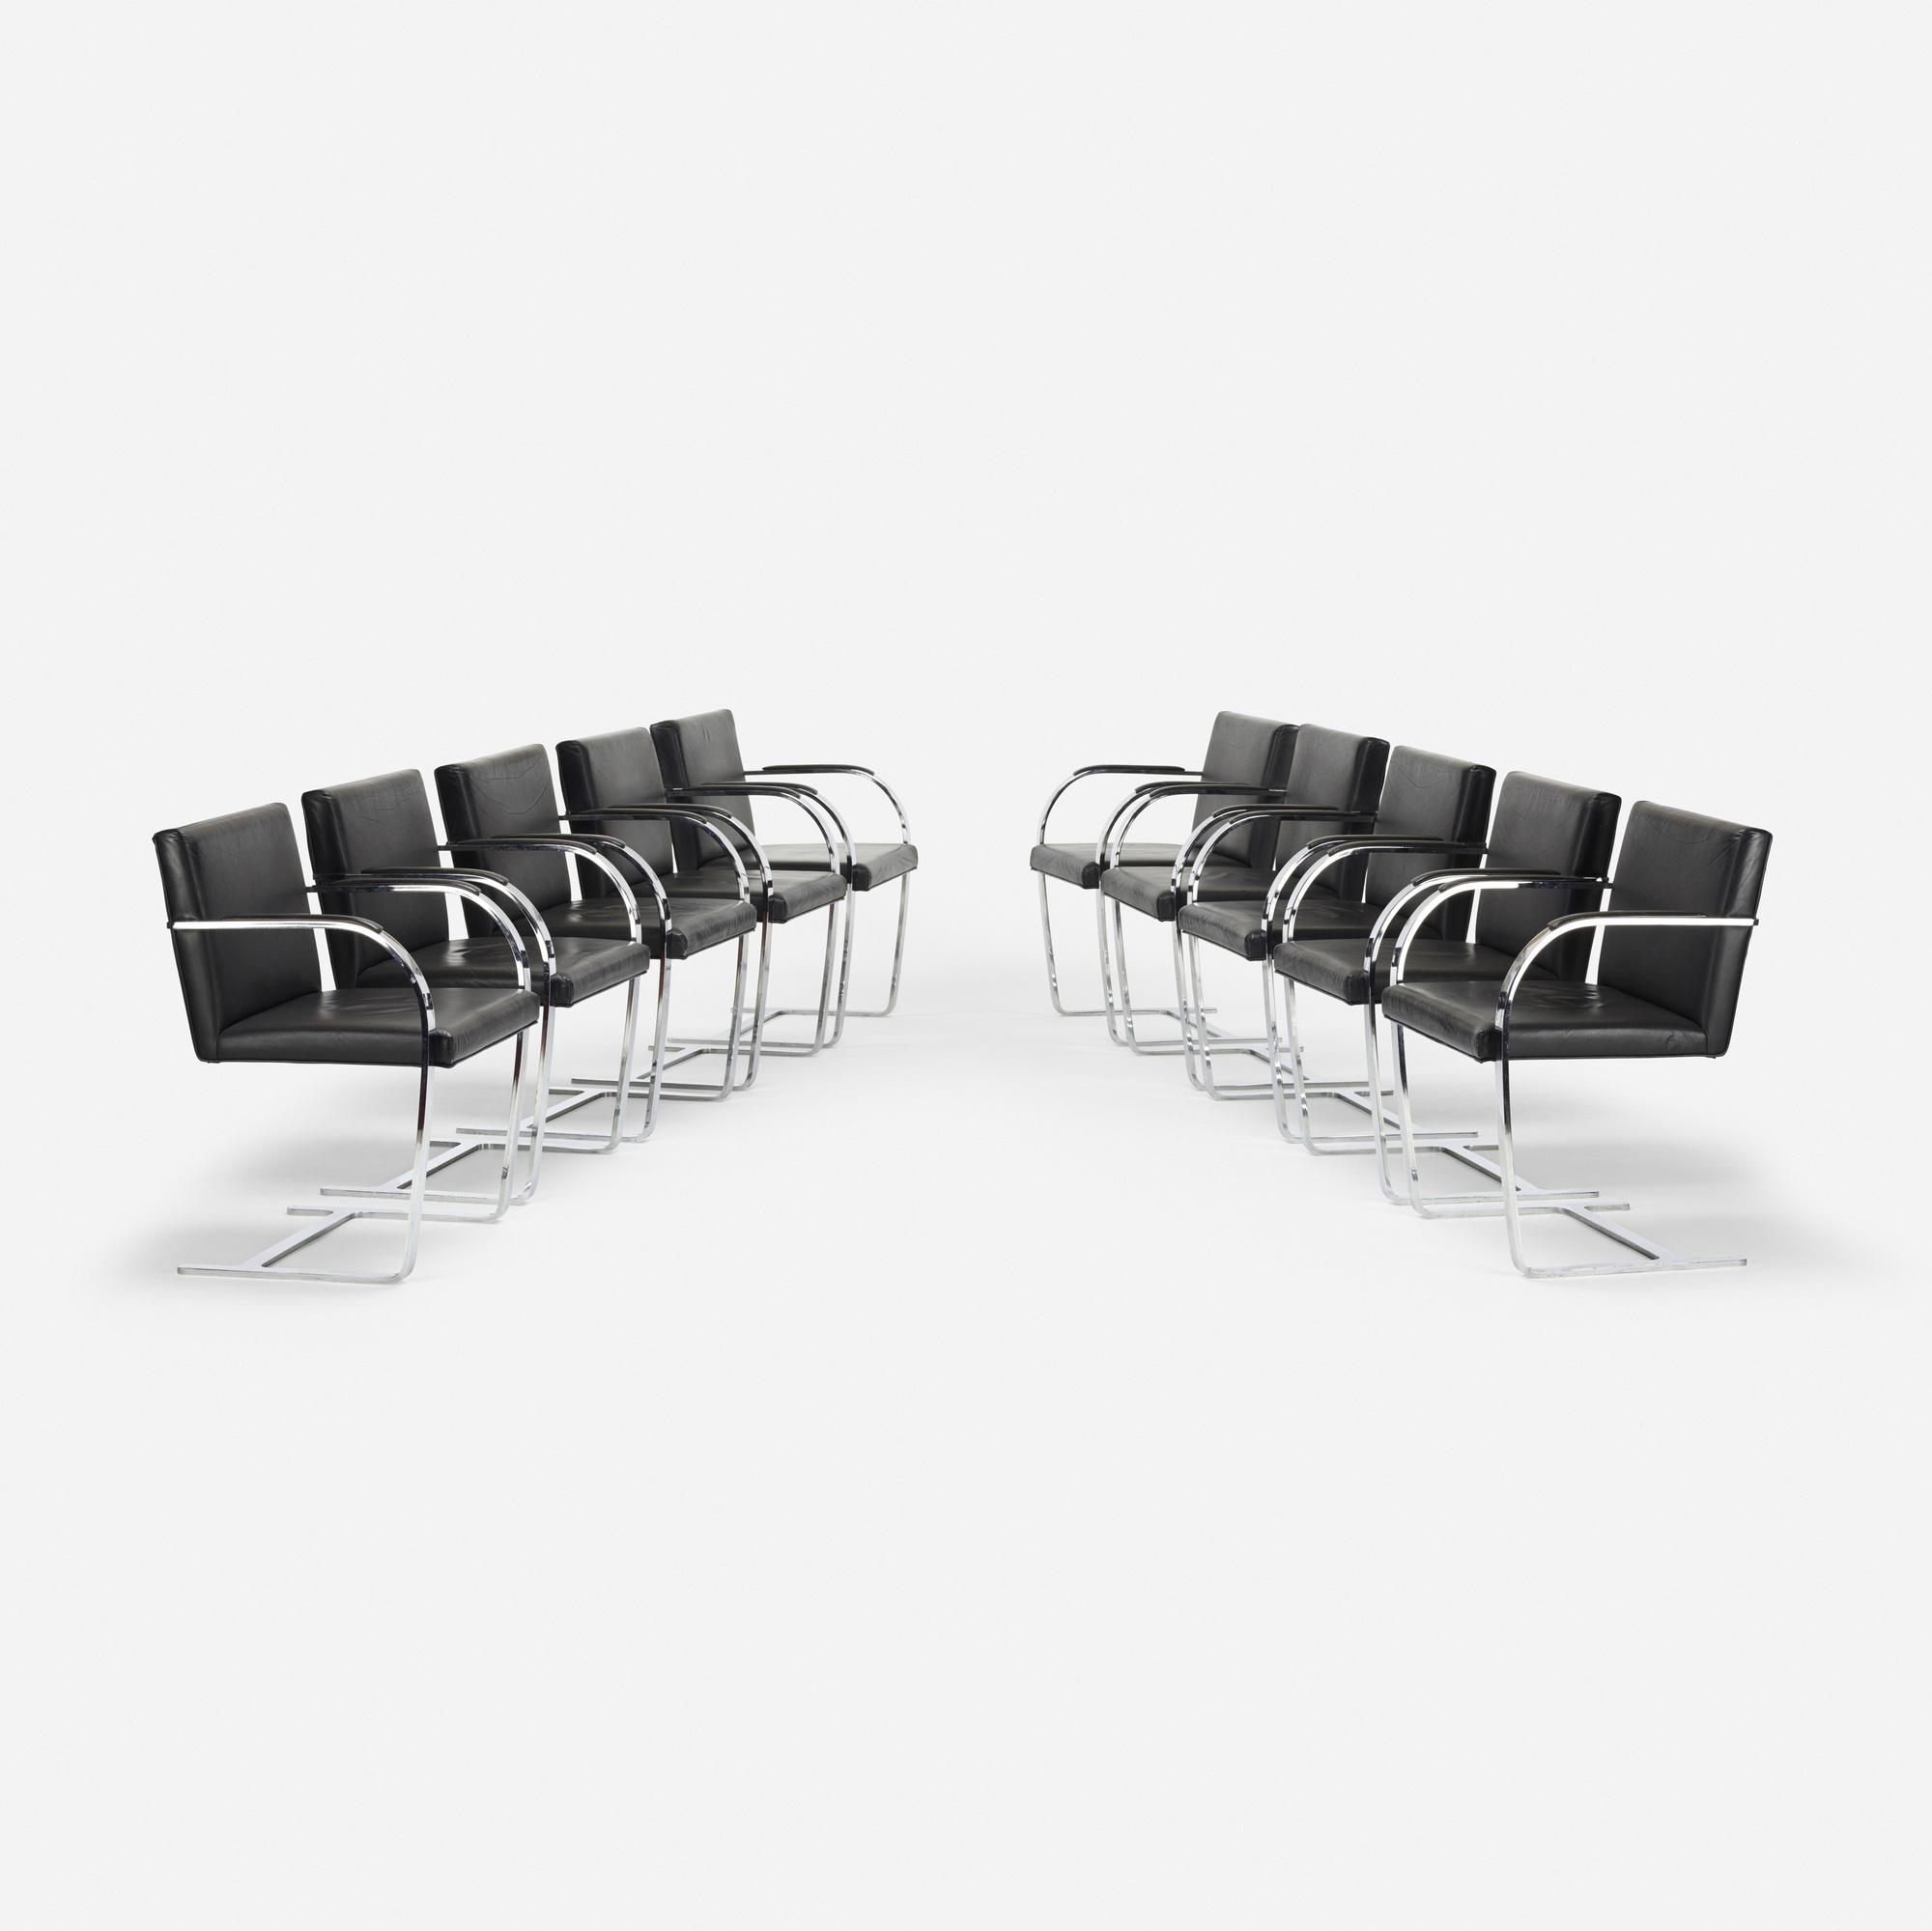 571: Ludwig Mies van der Rohe / Brno chairs, set of ten (1 of 2)